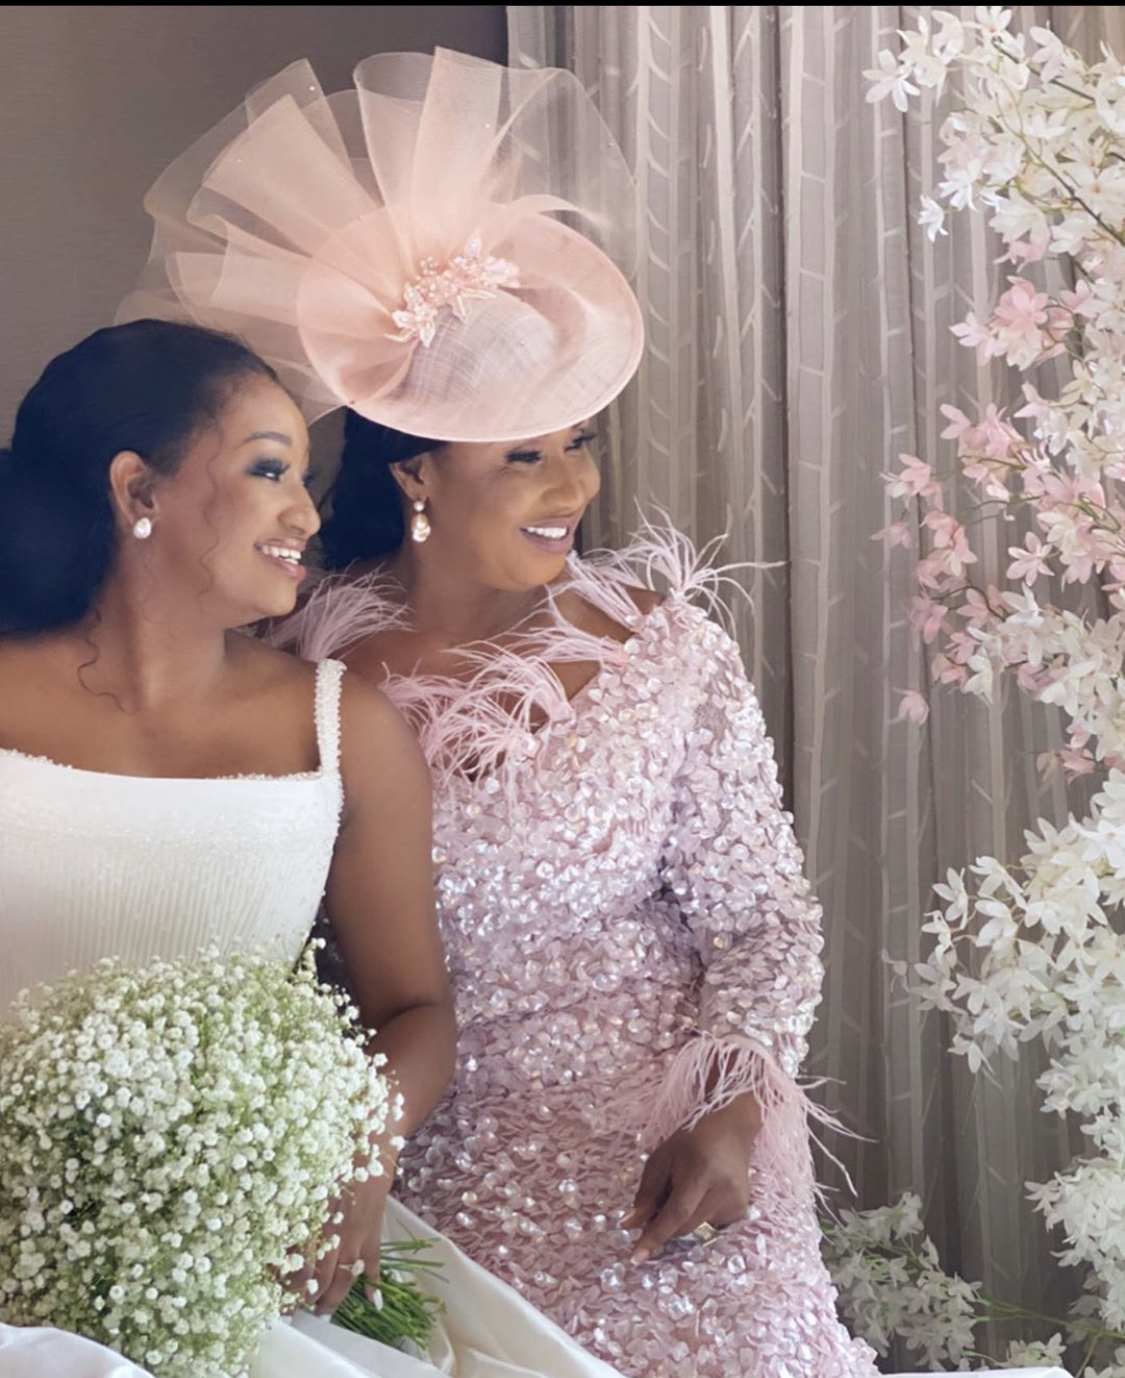 we're-loving-this-mother-daughter-portrait-from-the-wedding-of-cindy,-daughter-of-special-ice-ce.o-ernest-ofori-sarpong